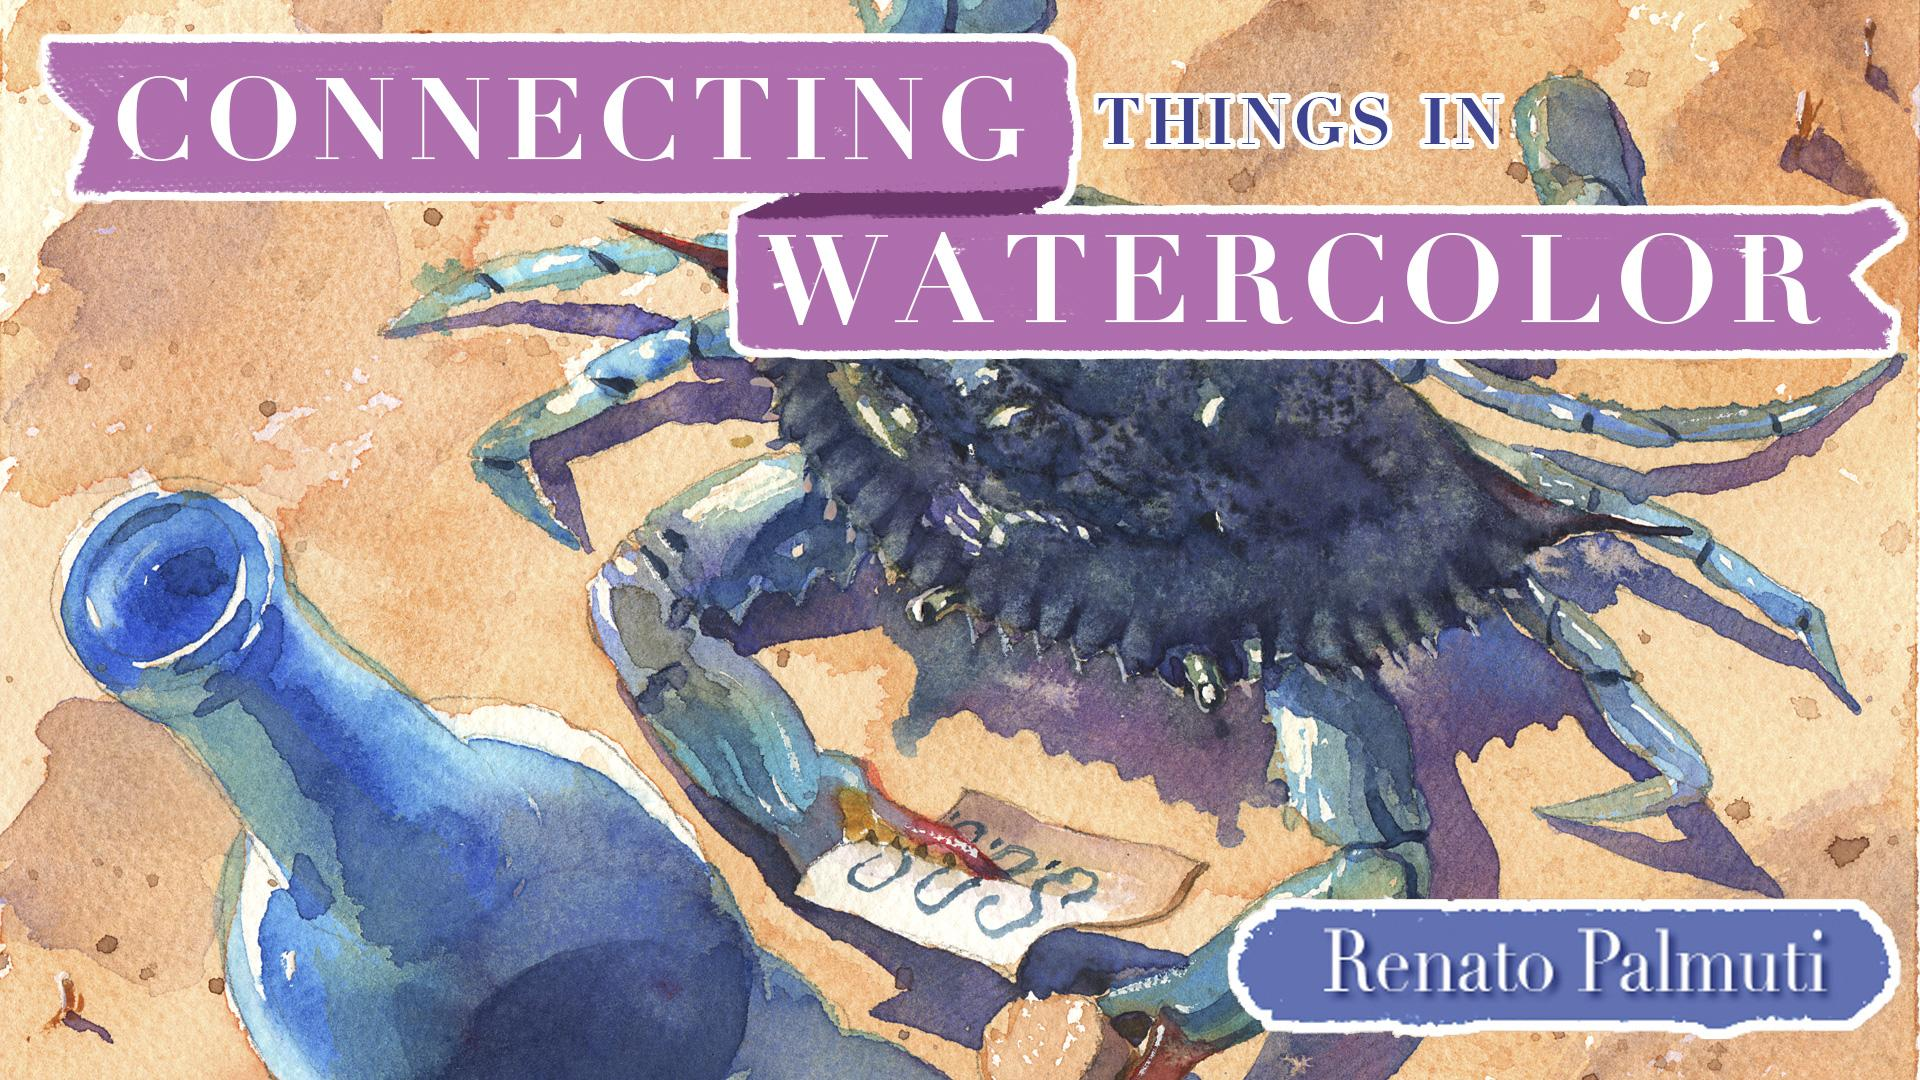 Connecting Things in Watercolor